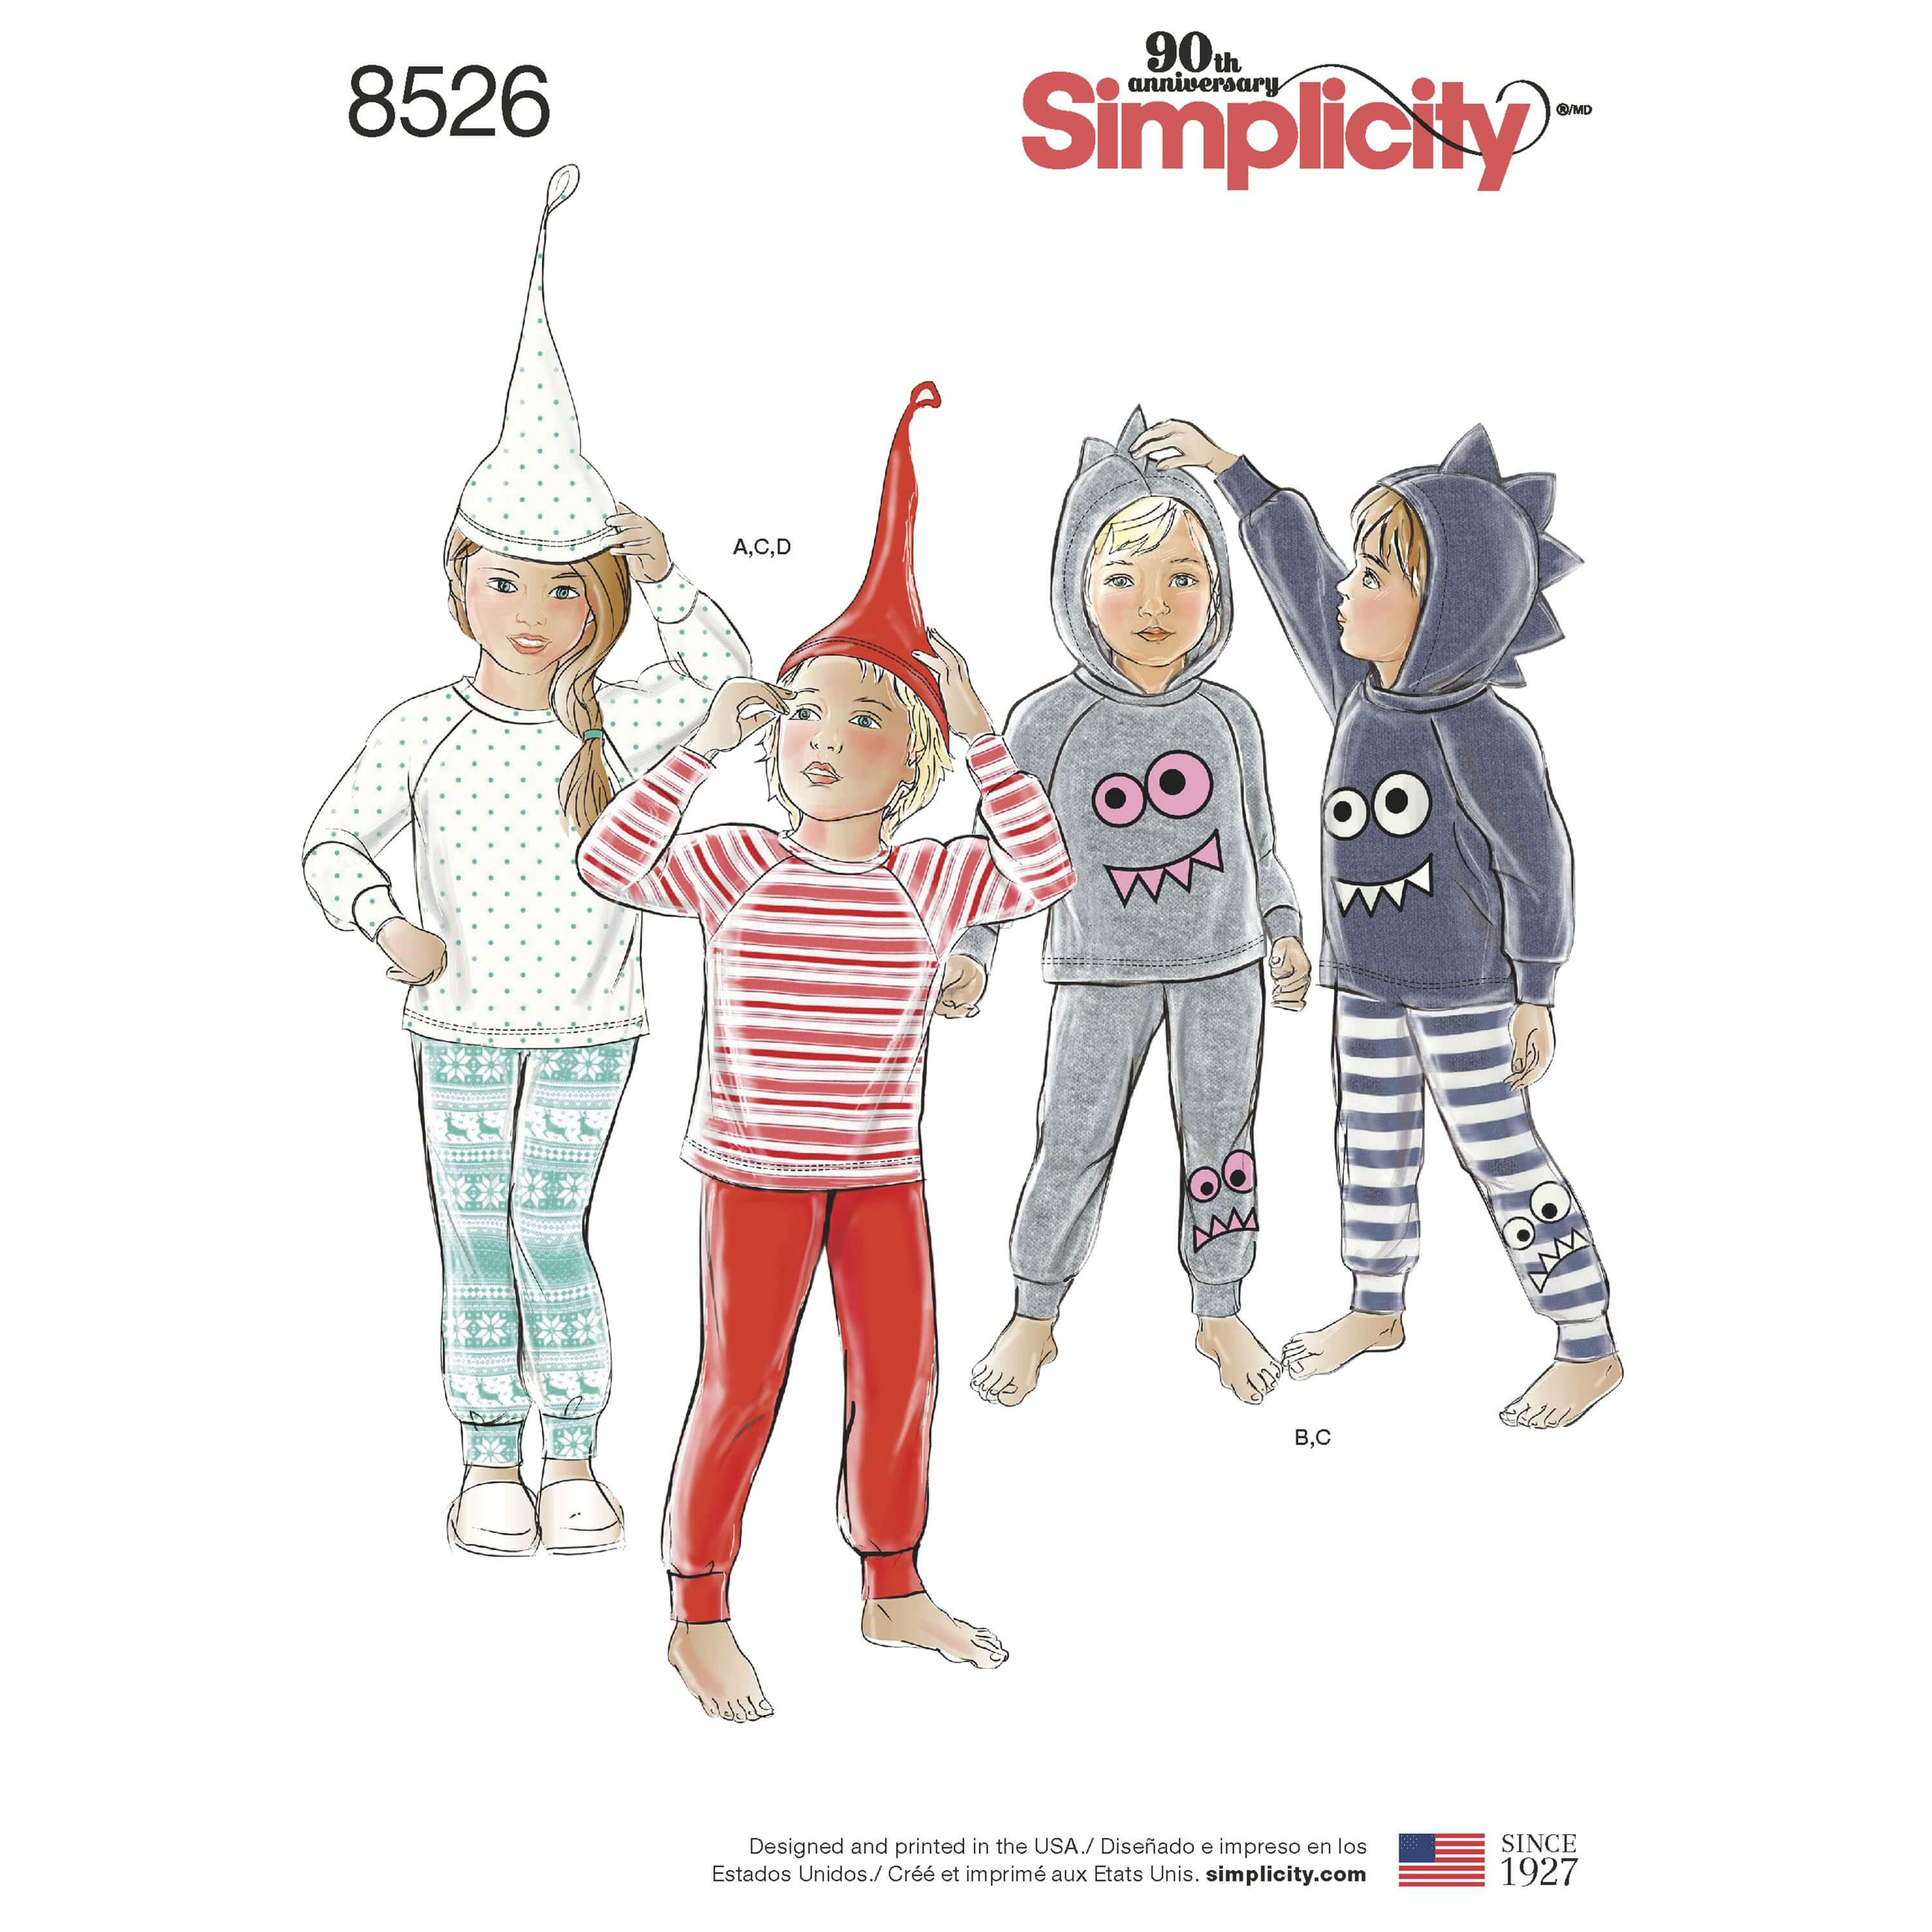 Simplicity Sewing Pattern 8526 Toddler and Child Knit Separates